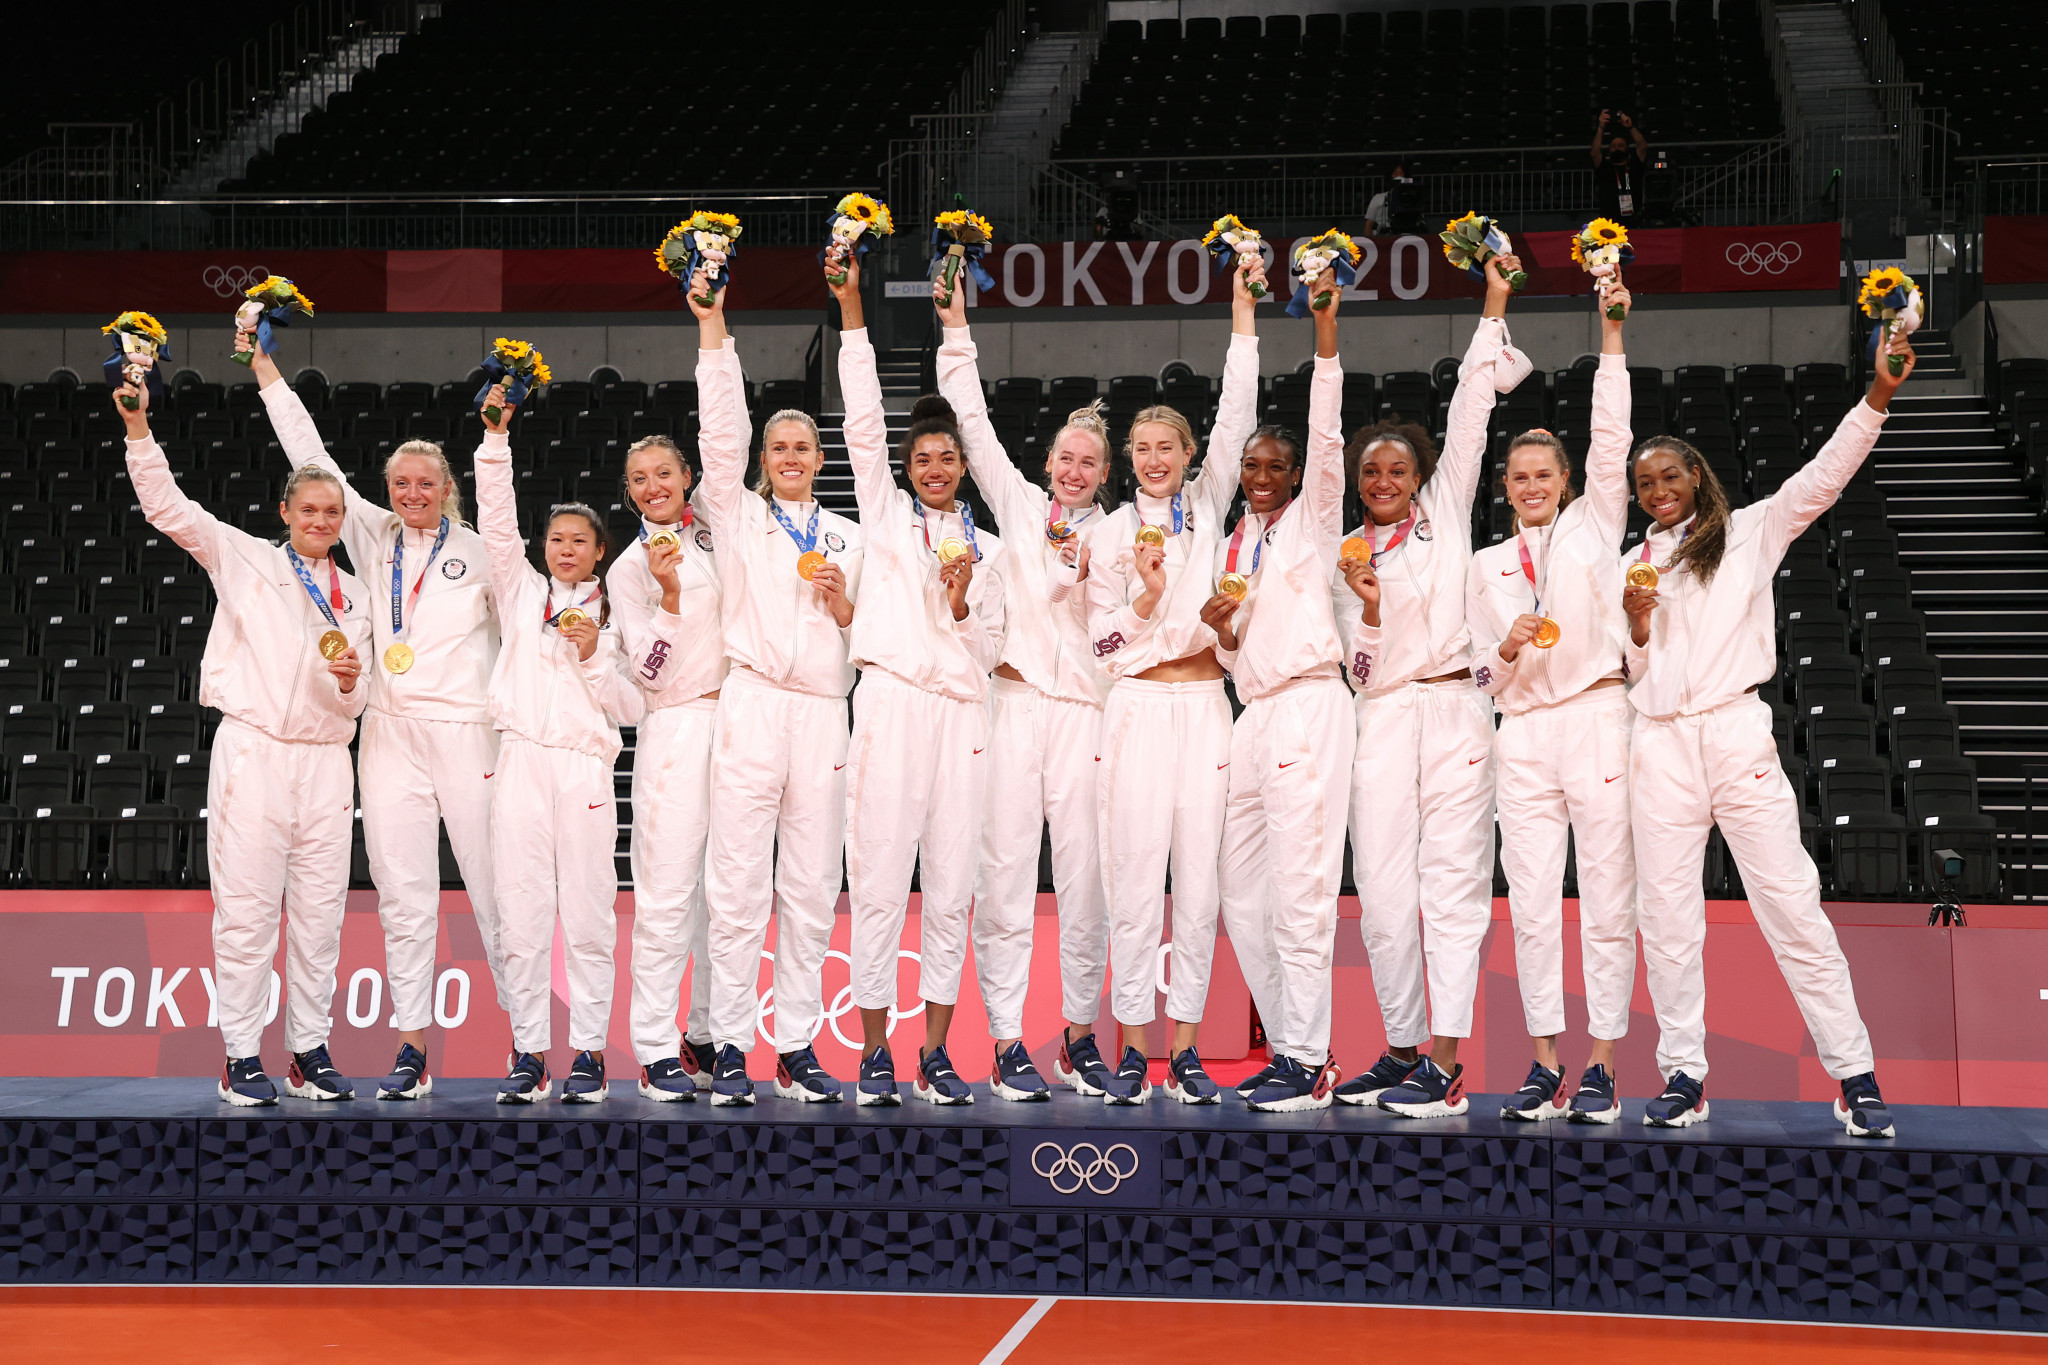 United States dominate Brazil to win inaugural women's volleyball gold